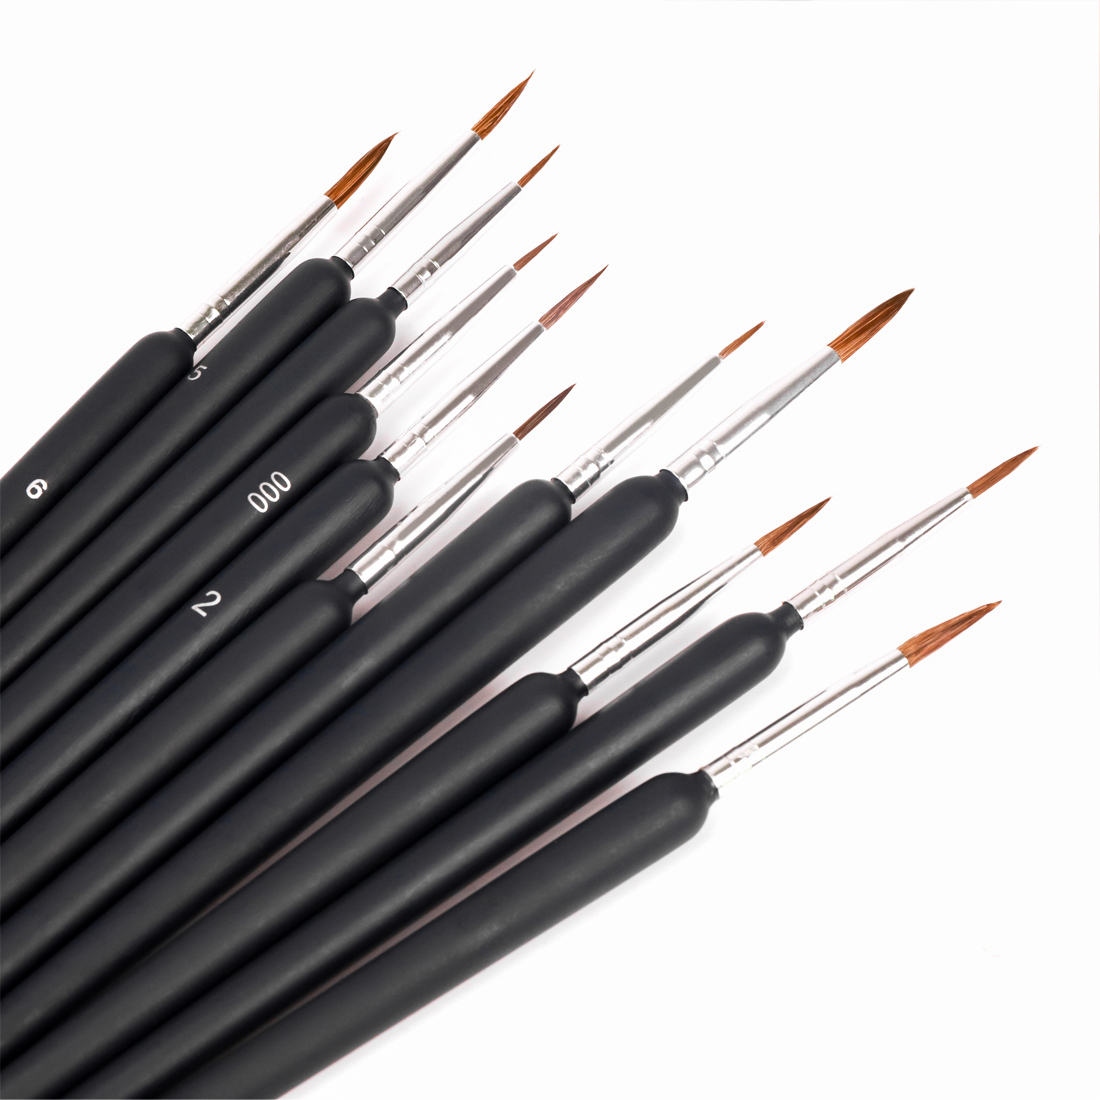 Memory Miniature Paint Brushes Set Professional Nylon hook line pen Art Liner drawing for Acrylic Watercolor Painting